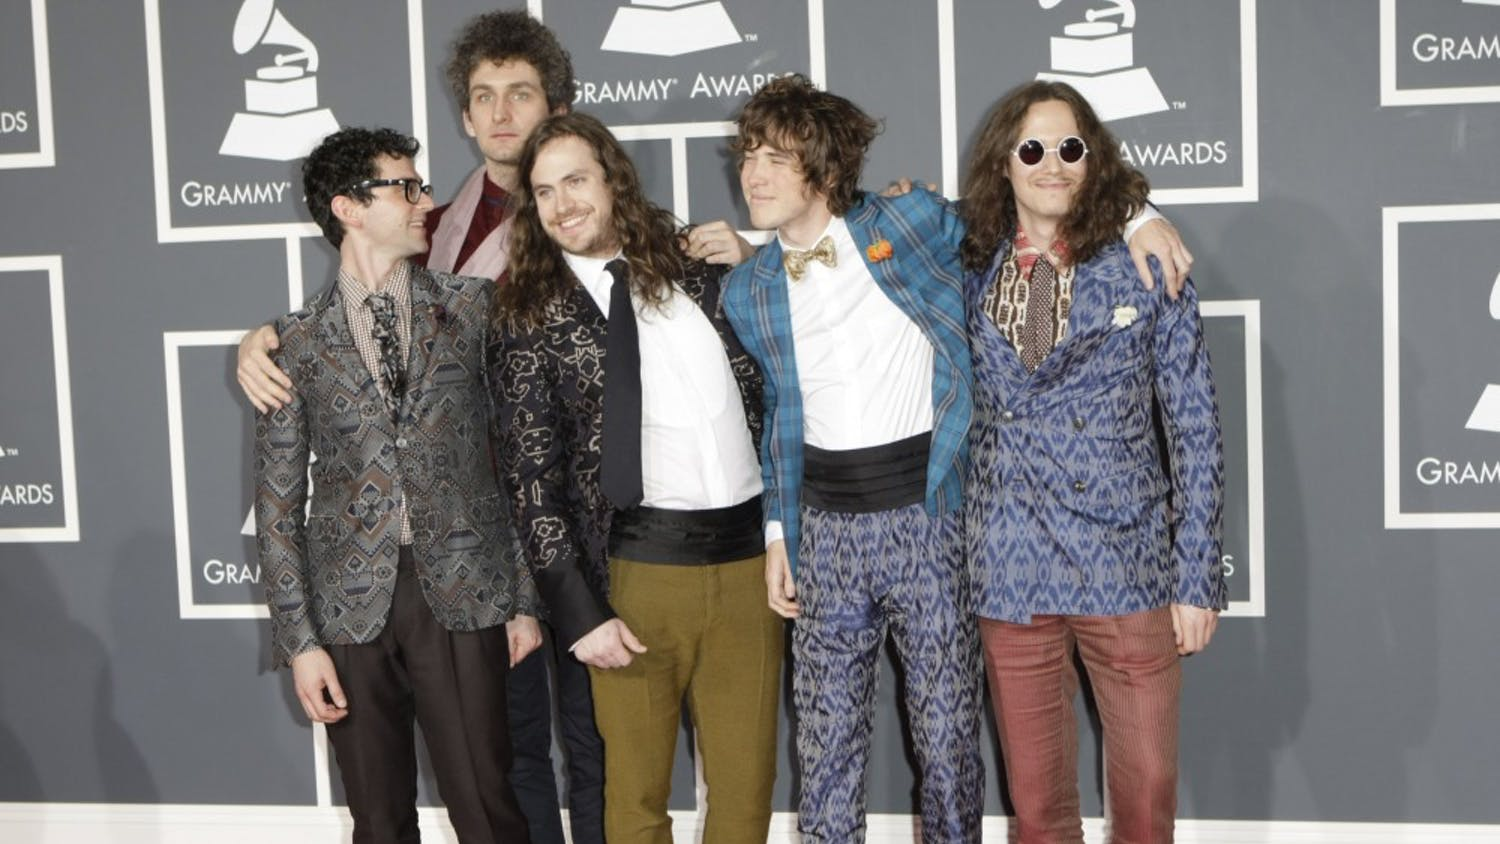 MGMT arrives at the 52nd Annual Grammy Awards at the Staples Center in Los Angeles, California, on Sunday, January 31, 2010. (Jay L. Clendenin/Los Angeles Times/MCT)